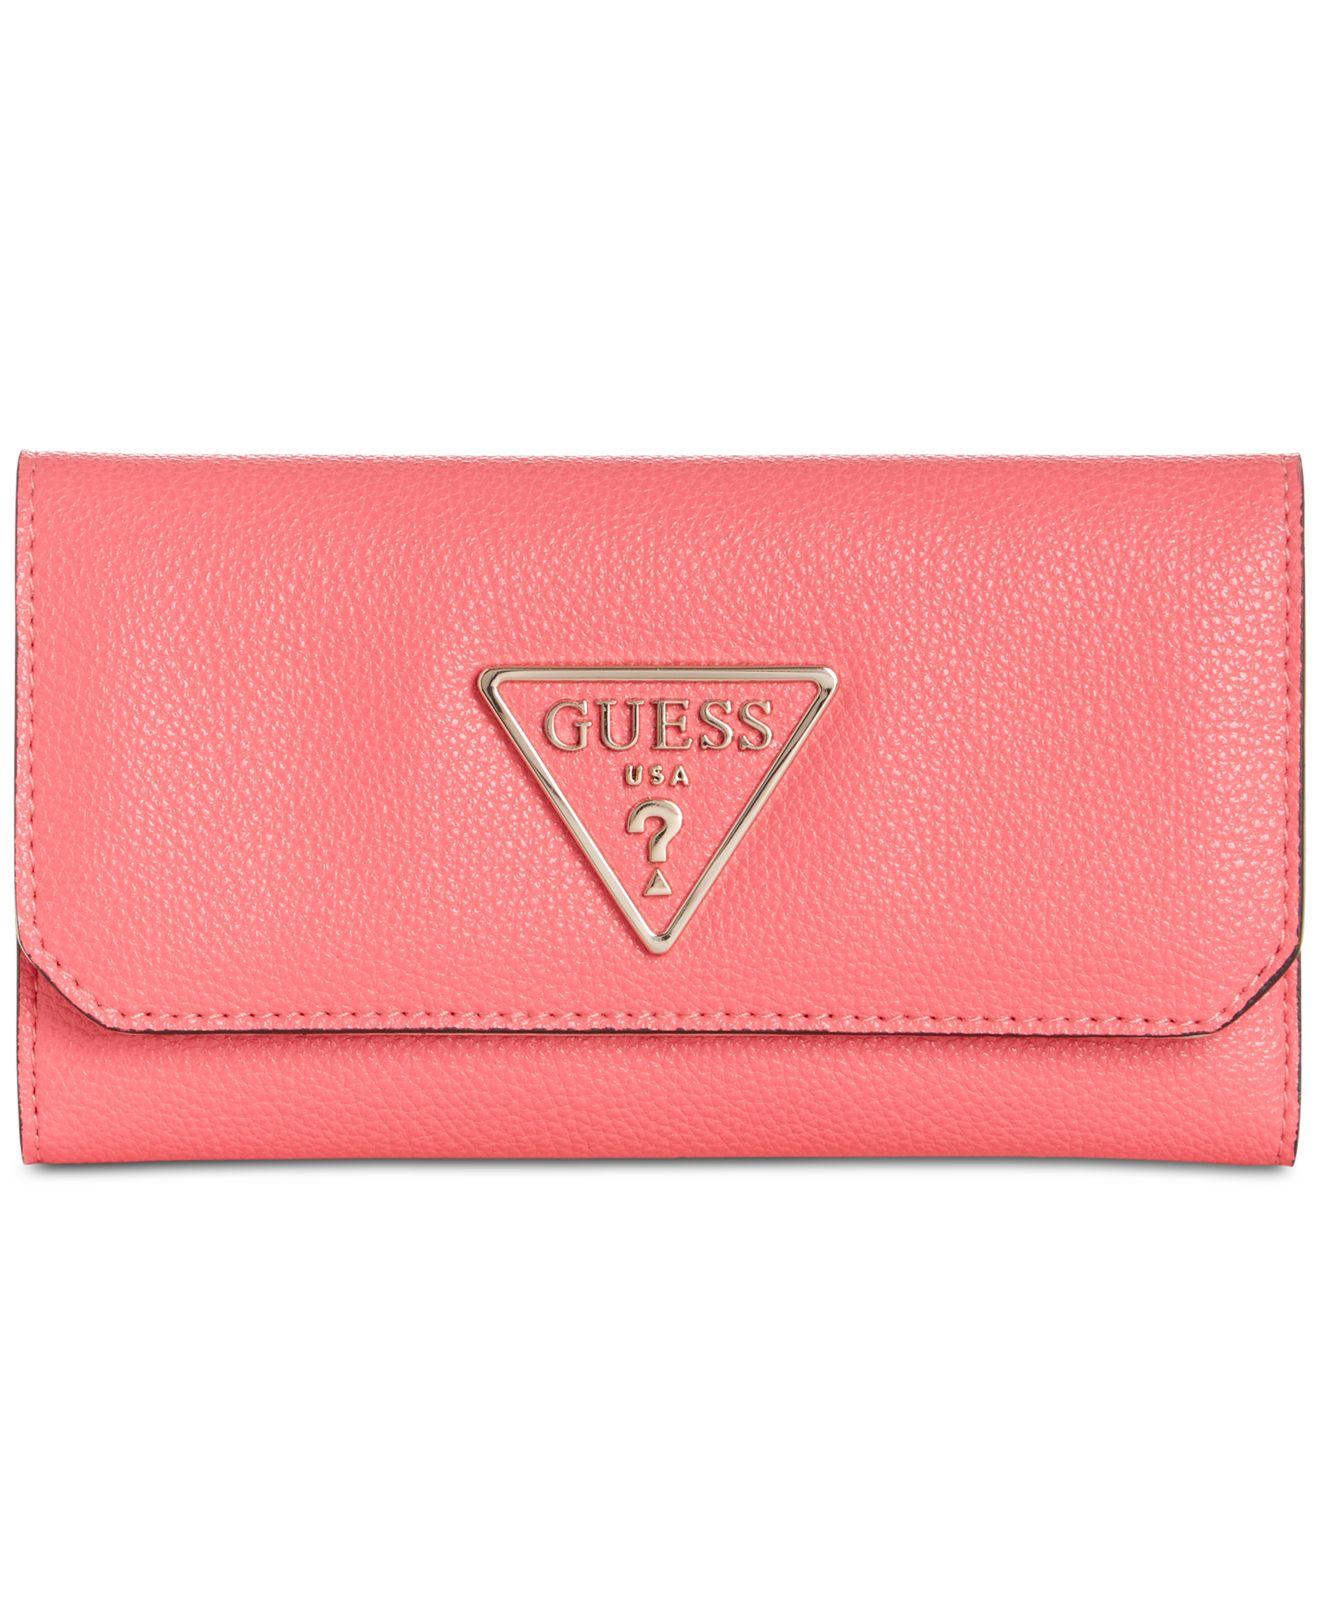 73c6d9cb450 Lyst - Guess G Legend Boxed Clutch Wallet in Pink